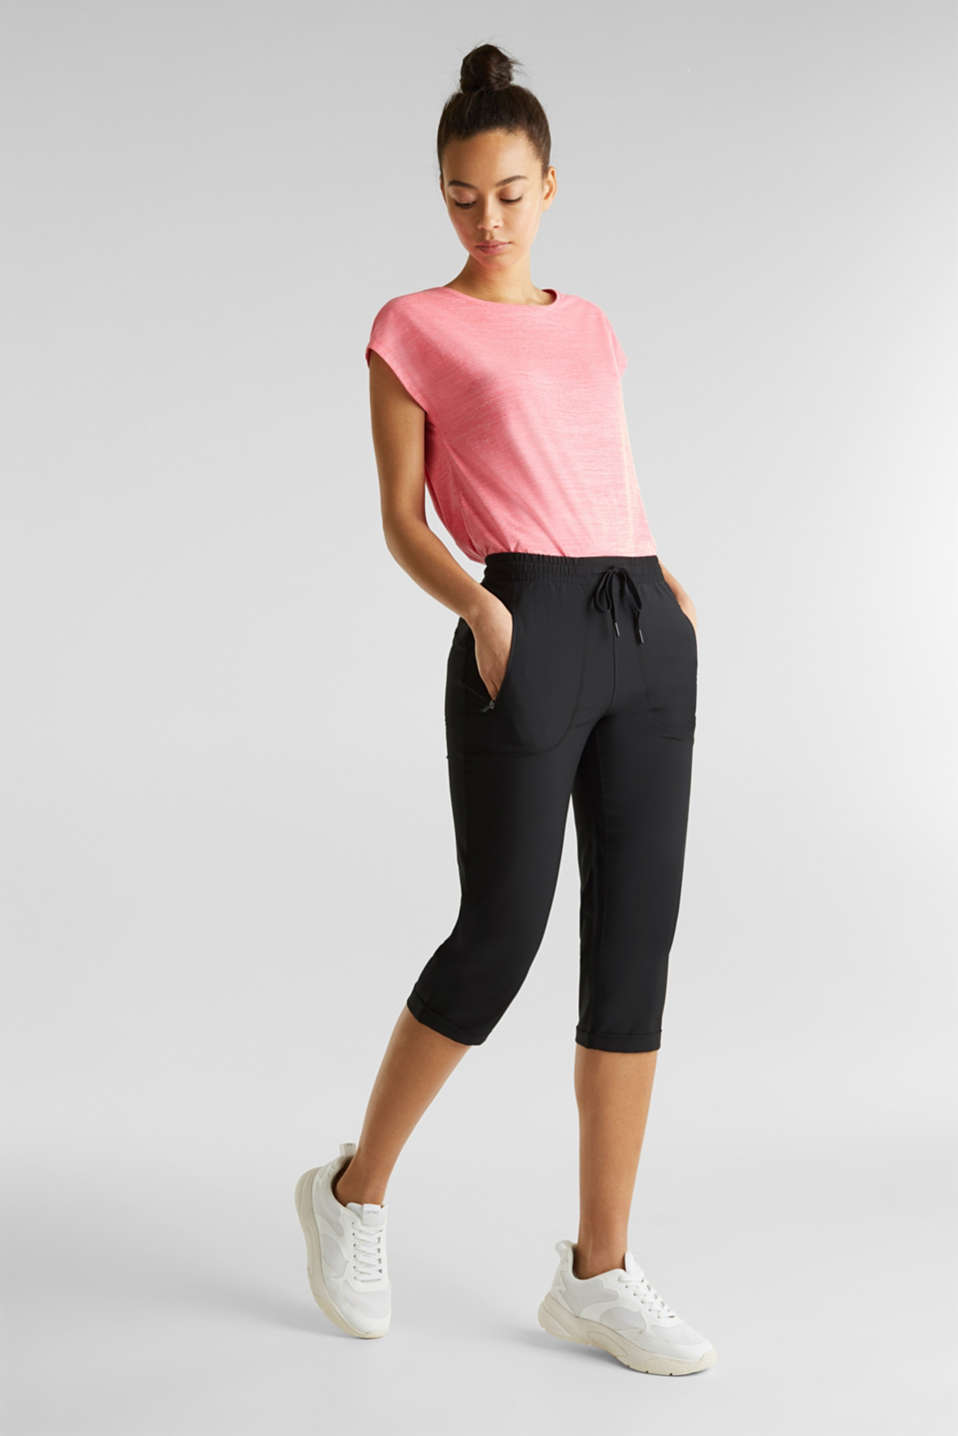 Esprit - Woven capris with turned-up hems, edry